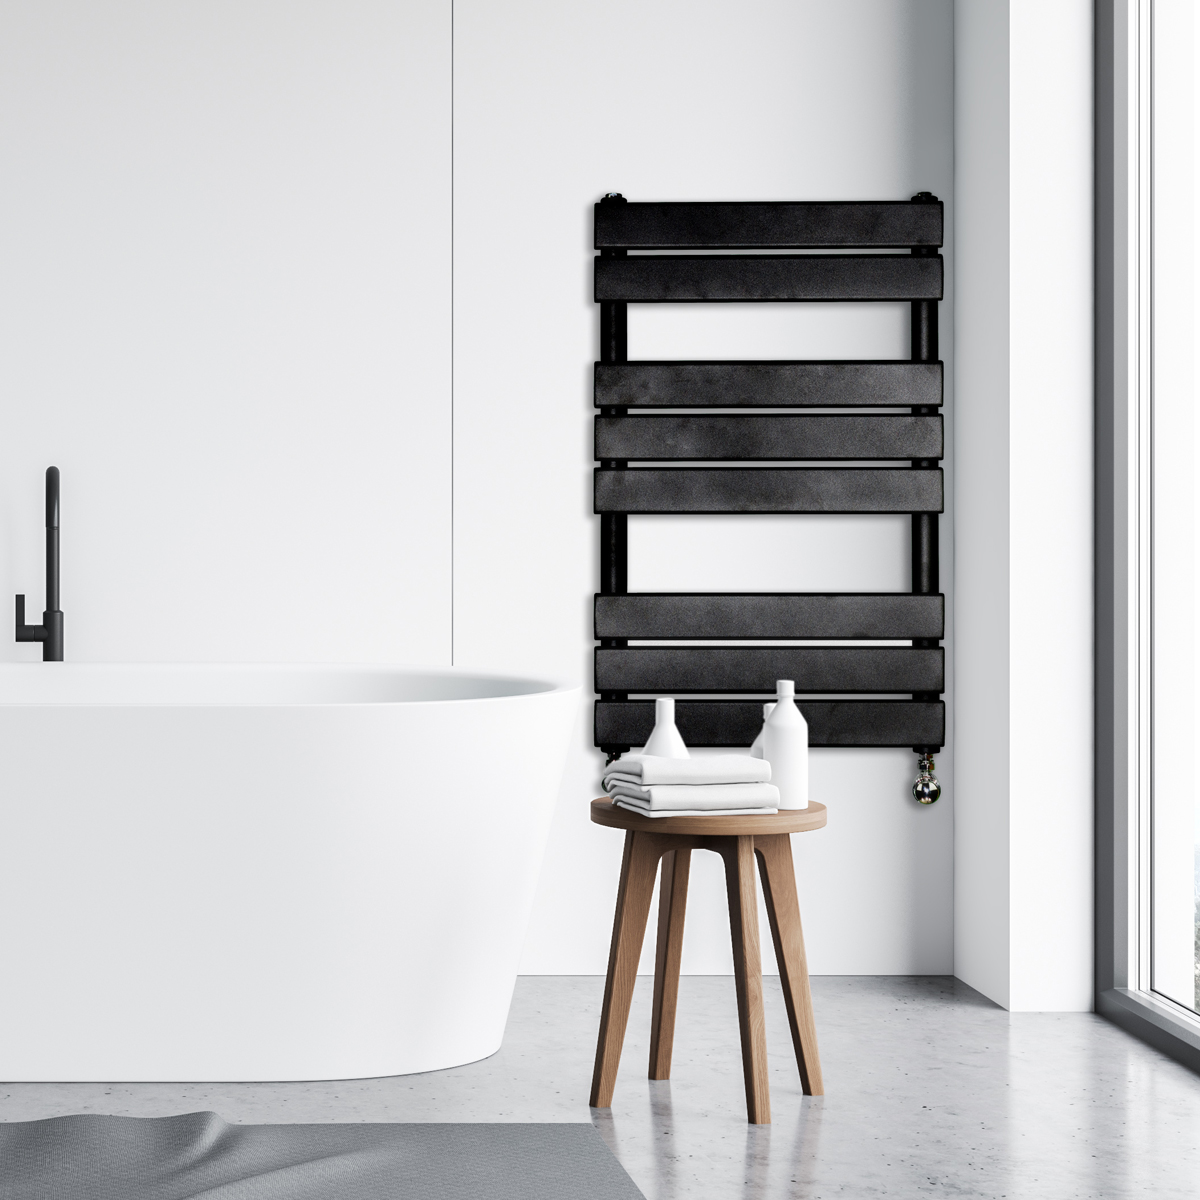 Adige Designer Towel Radiator Black, Designer Radiator towel rail | Designer Radiators Ireland